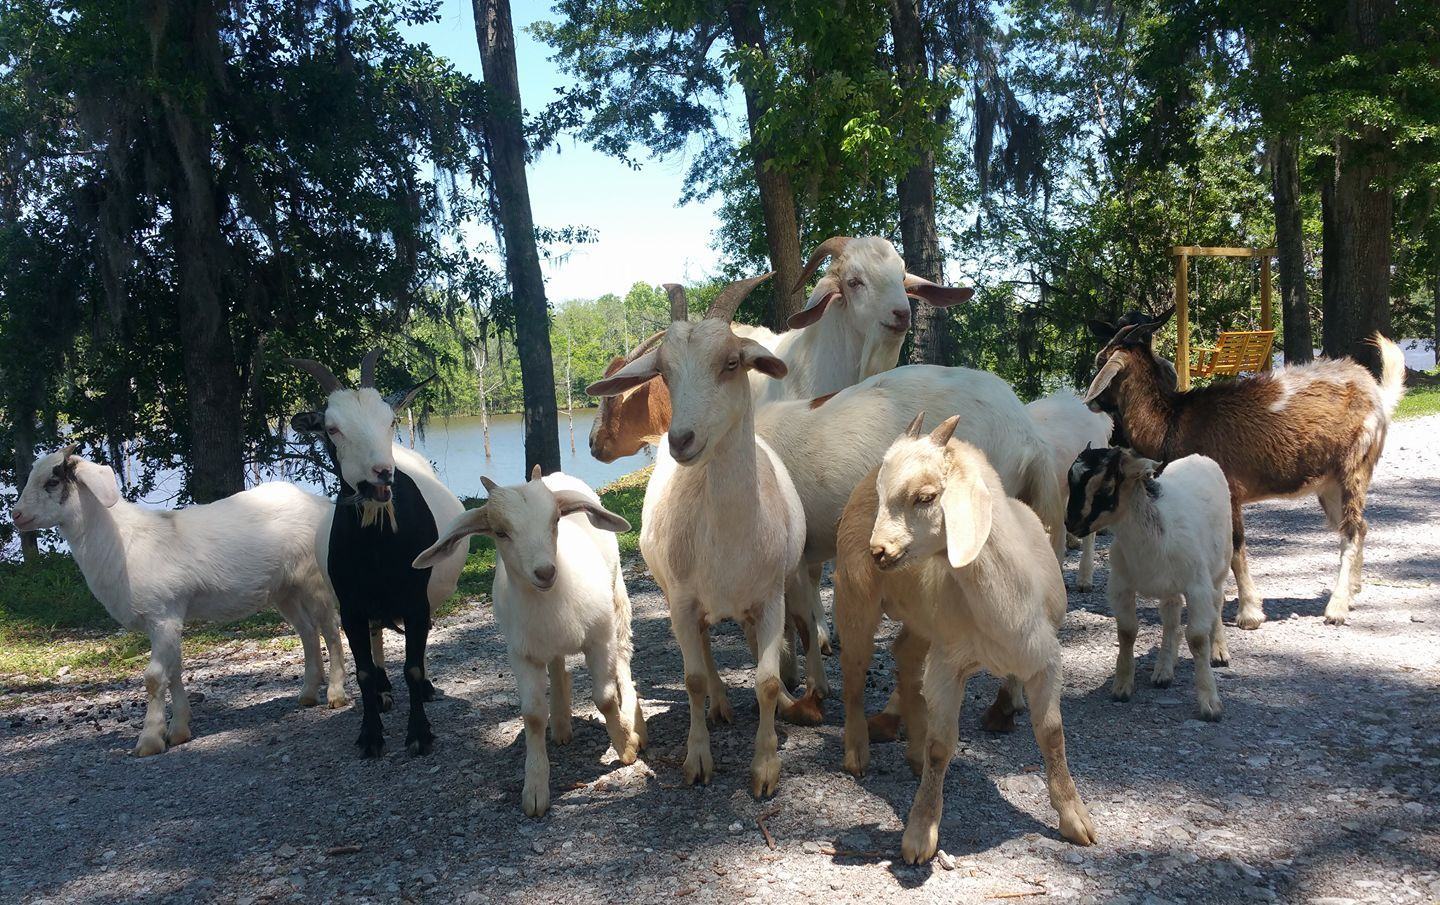 Goats in Alabama